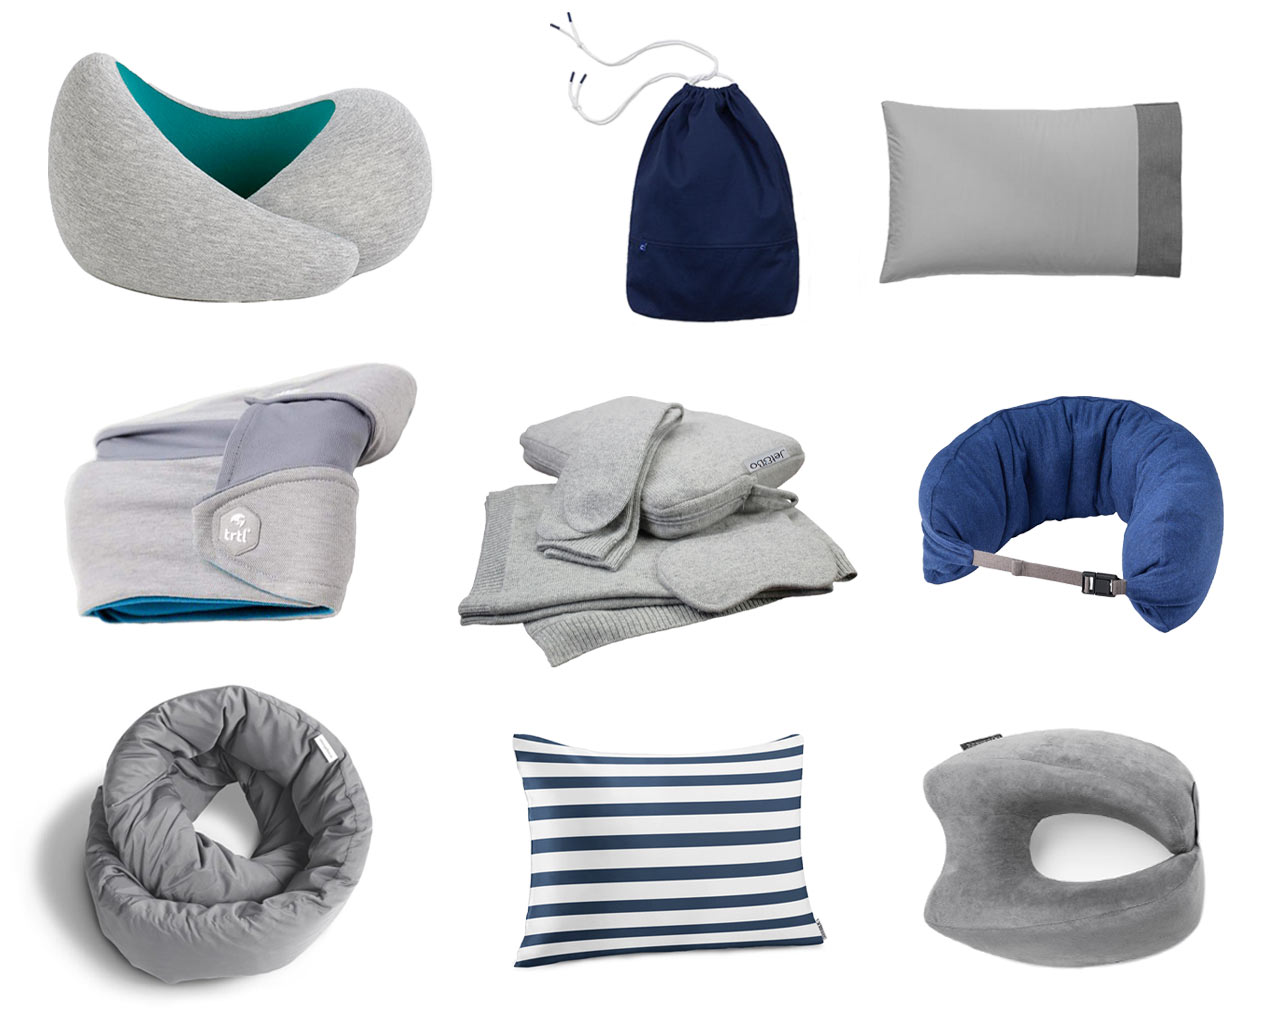 travel pillows so you can travel in comfort